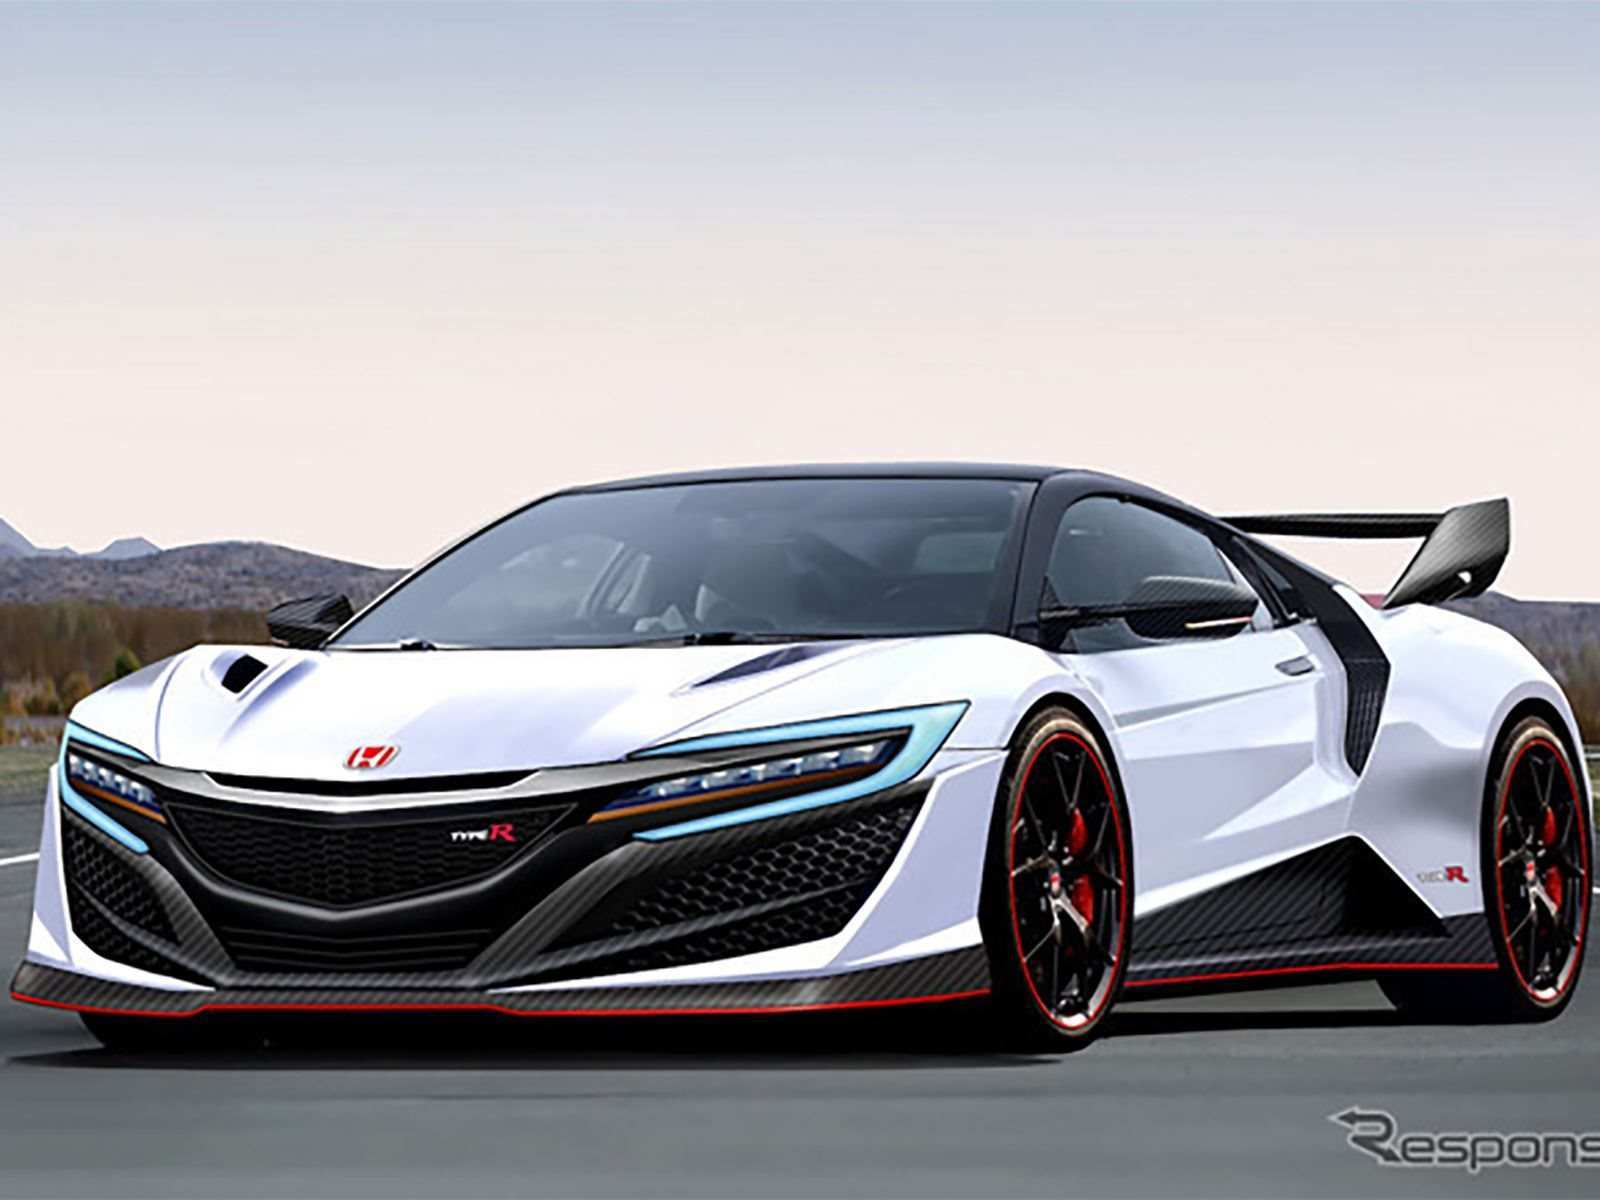 24 Concept of Honda Nsx Type R 2020 Spesification with Honda Nsx Type R 2020